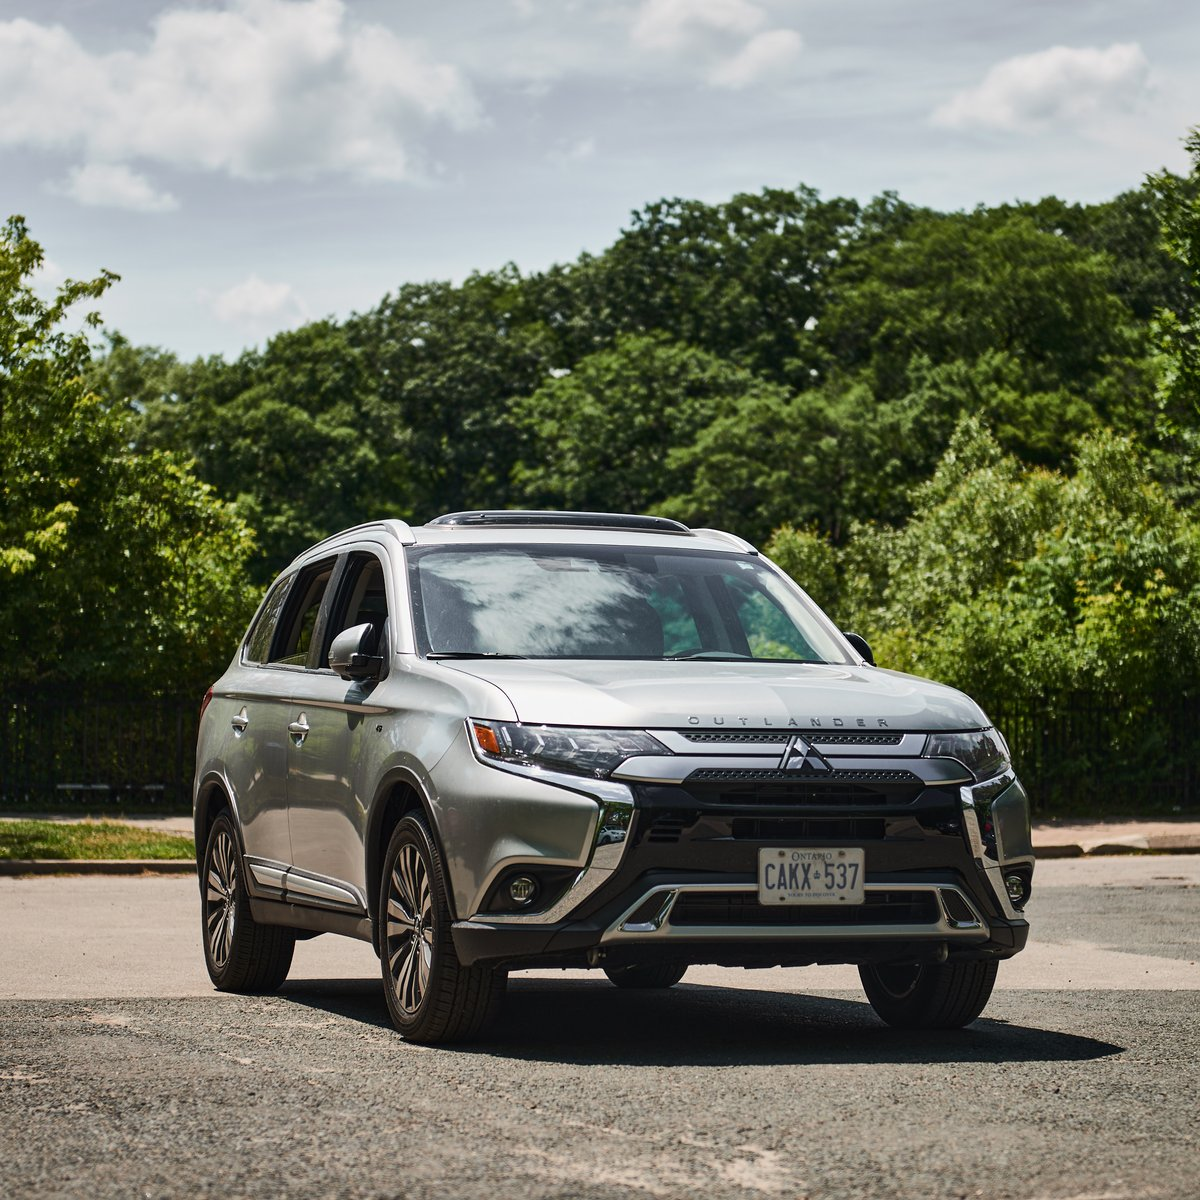 An All-Around Performer.  #Outlander #MitsubishiMotors #DriveyourAmbition #RéalisezVosAmbitions https://t.co/ZH67q3ZBx6